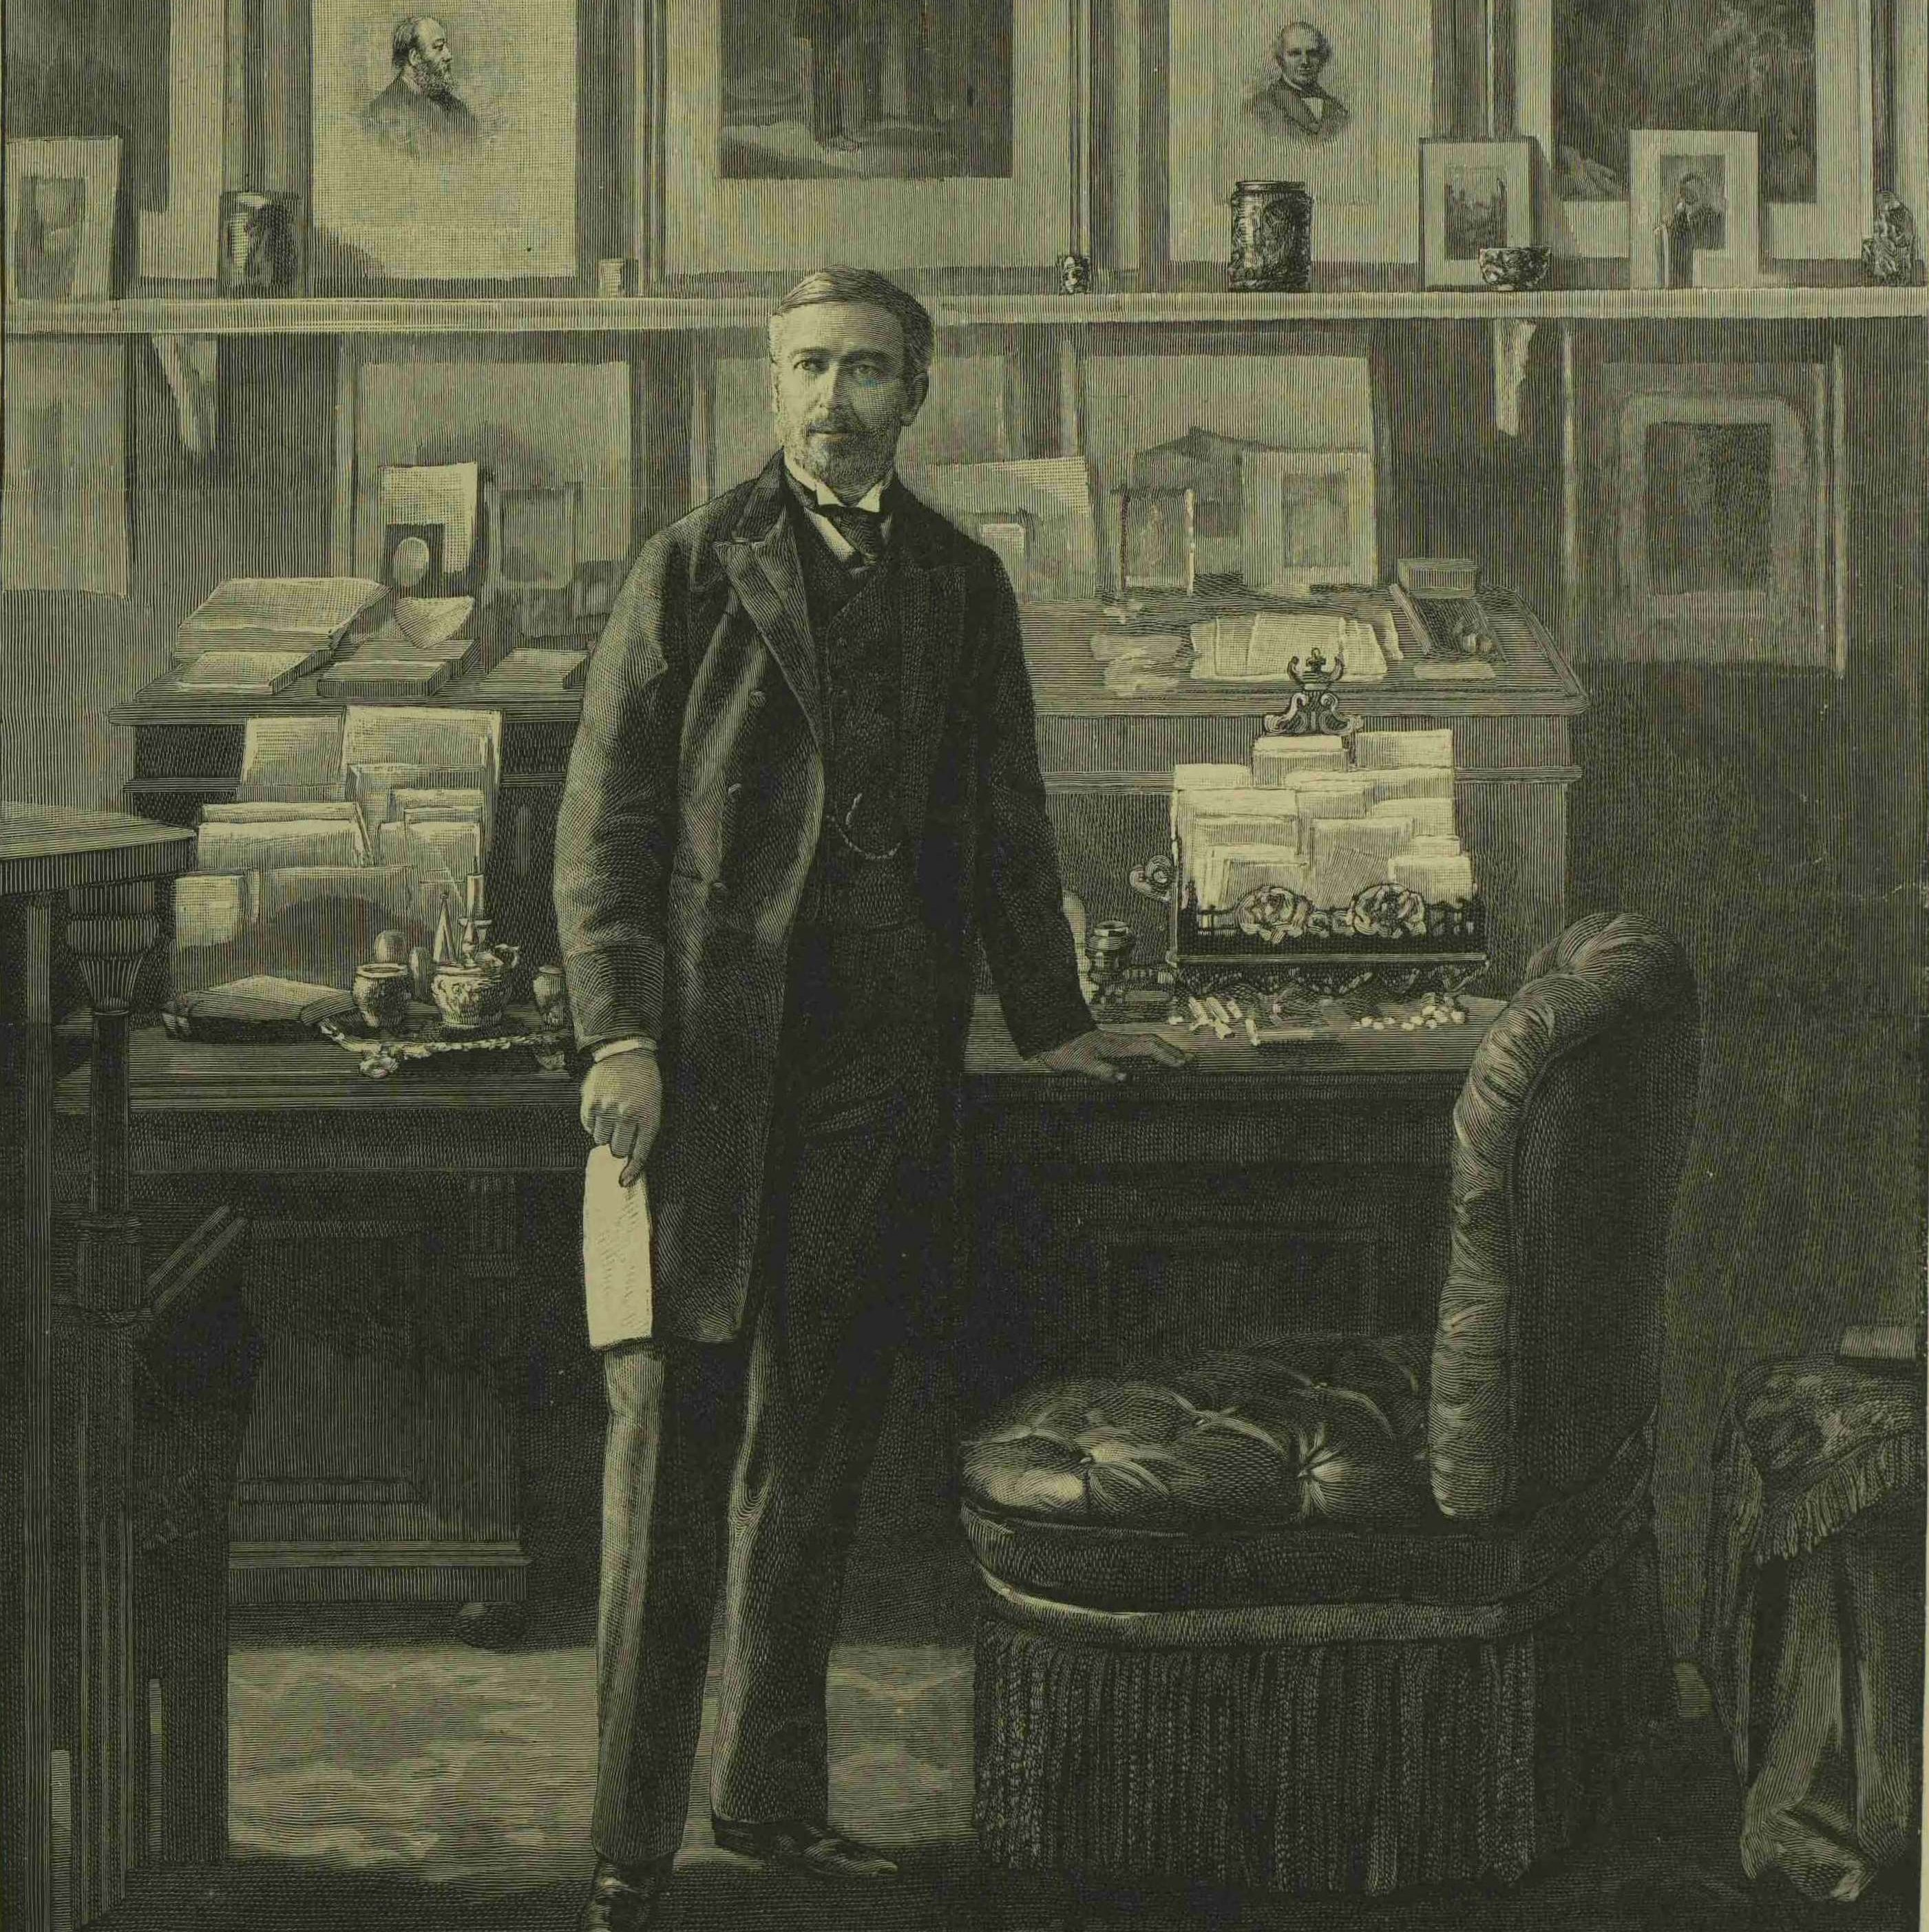 Engraving of a portrait of Sir Edward Malet in his study at the British embassy, Berlin, 1893